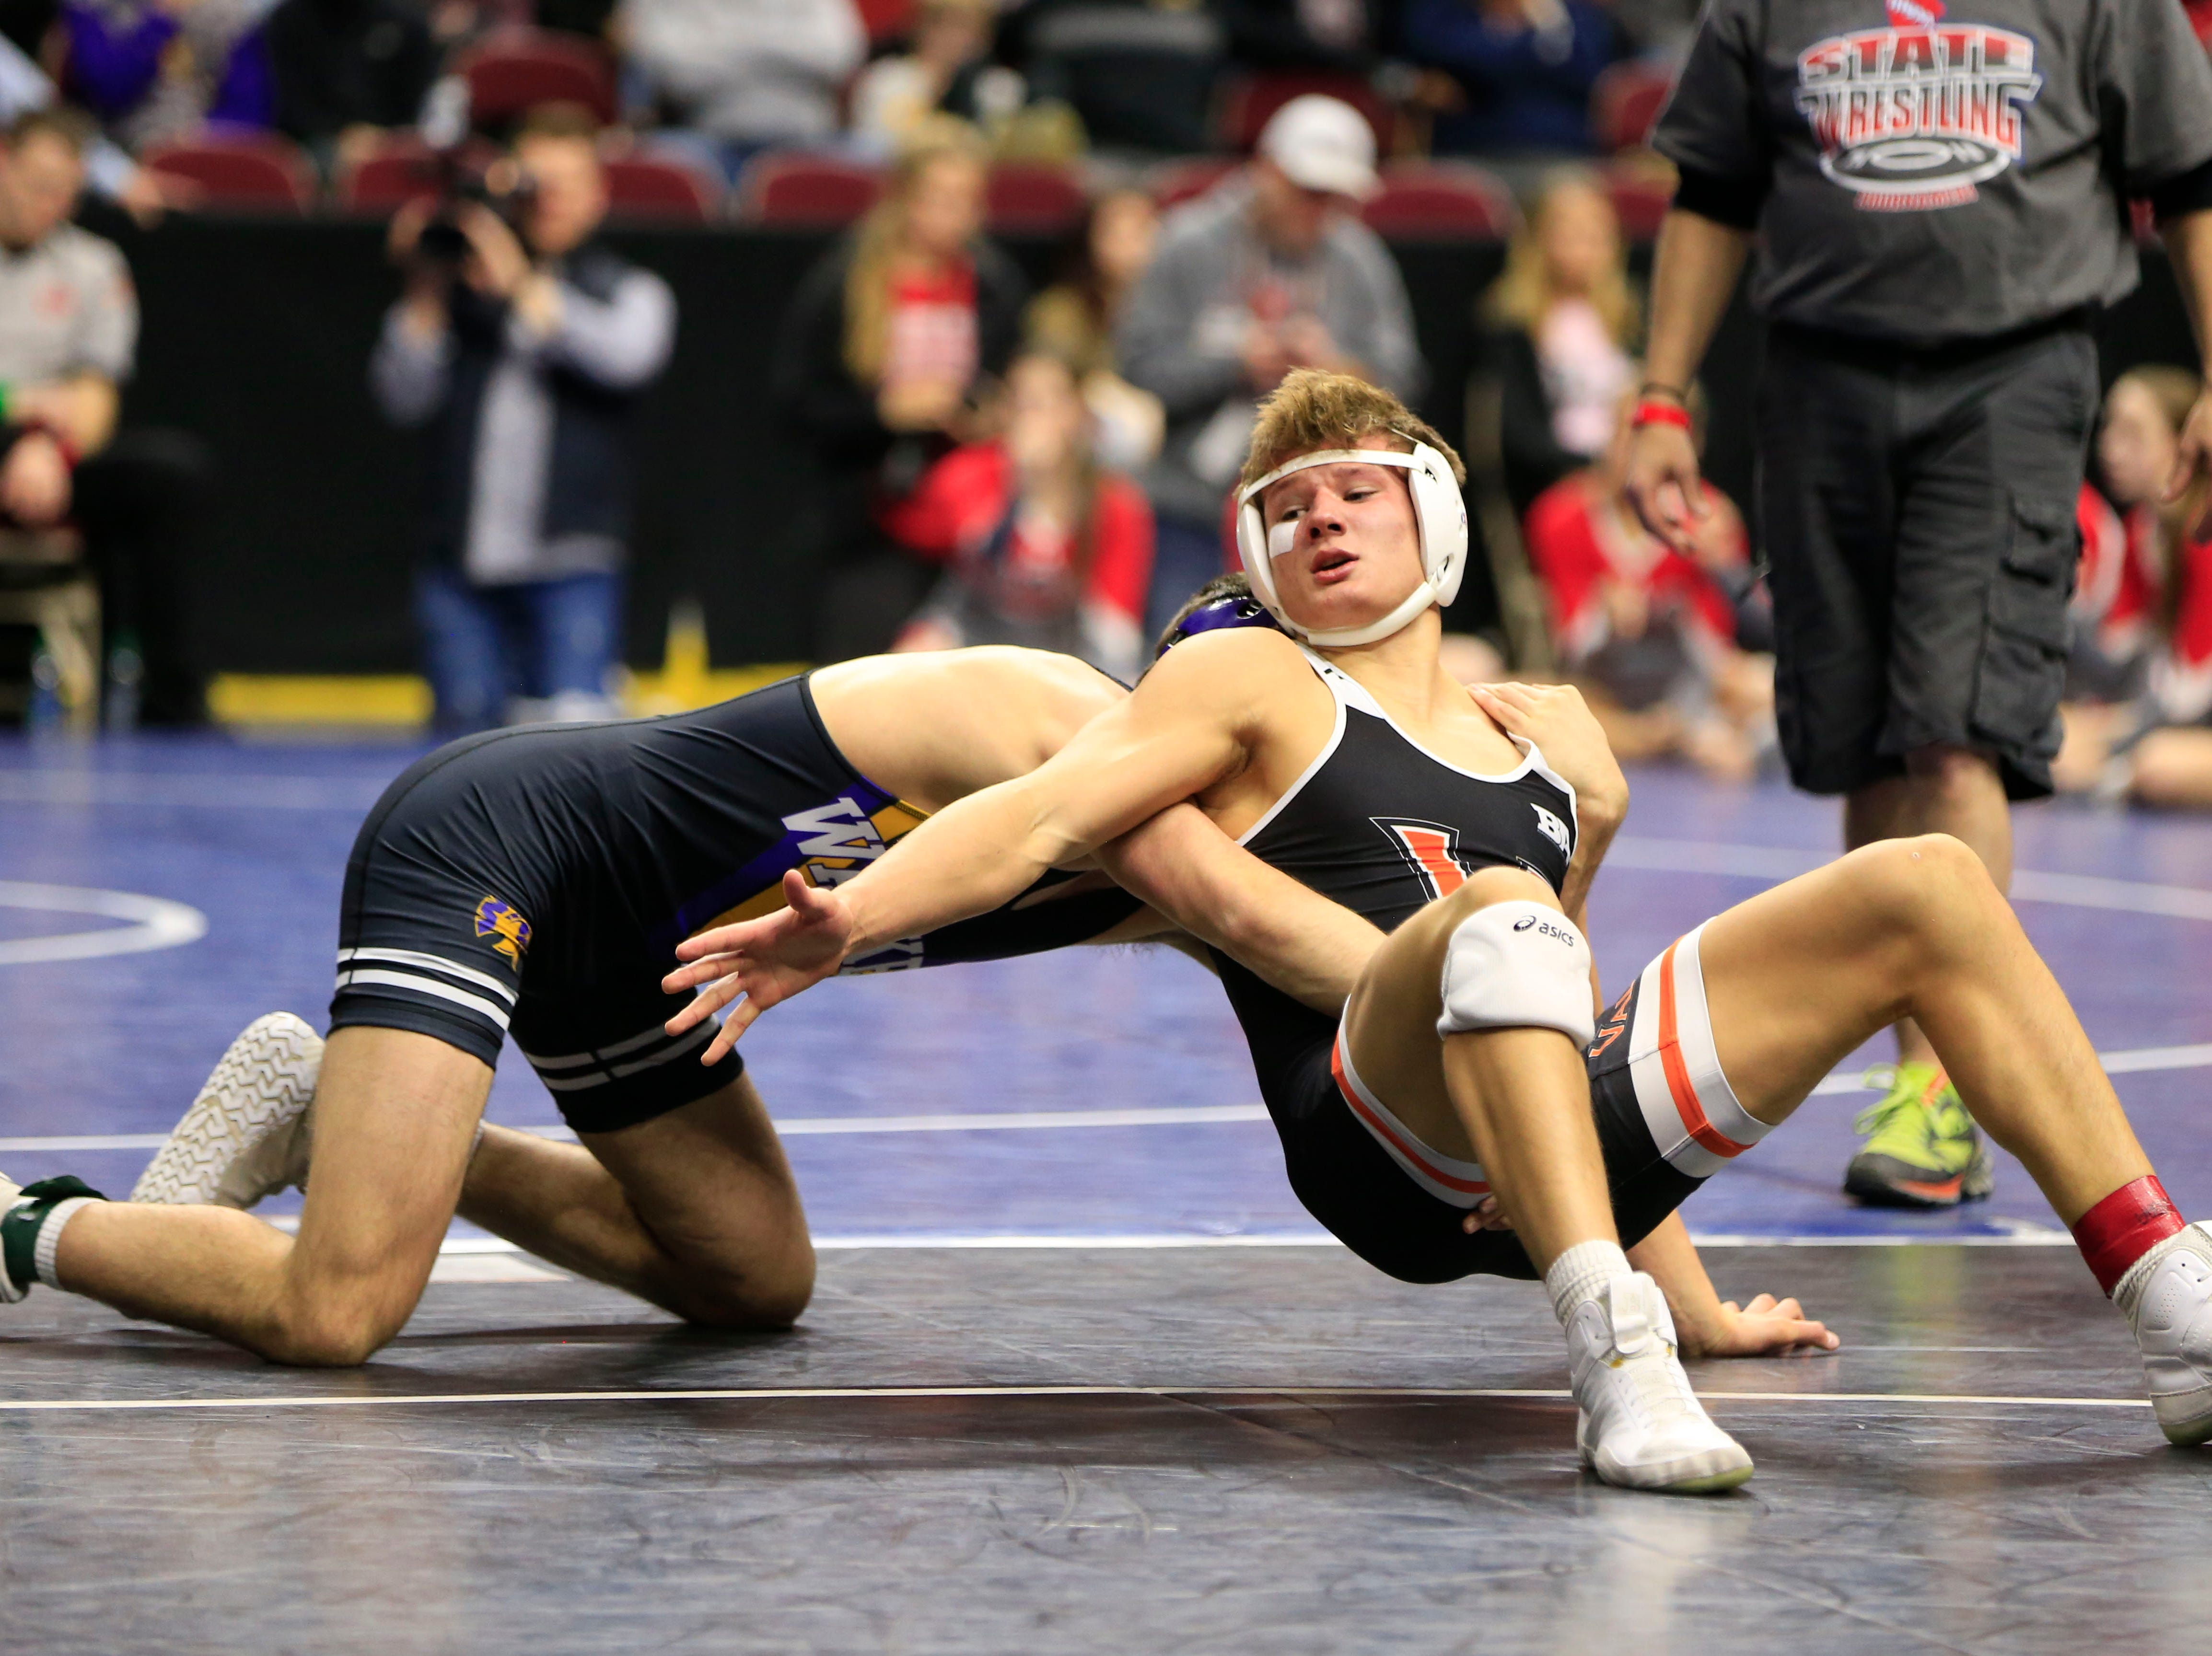 Anthony Zach of Waukee defeats Blake Underwood of Valley, West Des Moines during a 170 Lb 3A semifinal match at the state wrestling tournament Friday, Feb. 15, 2019.